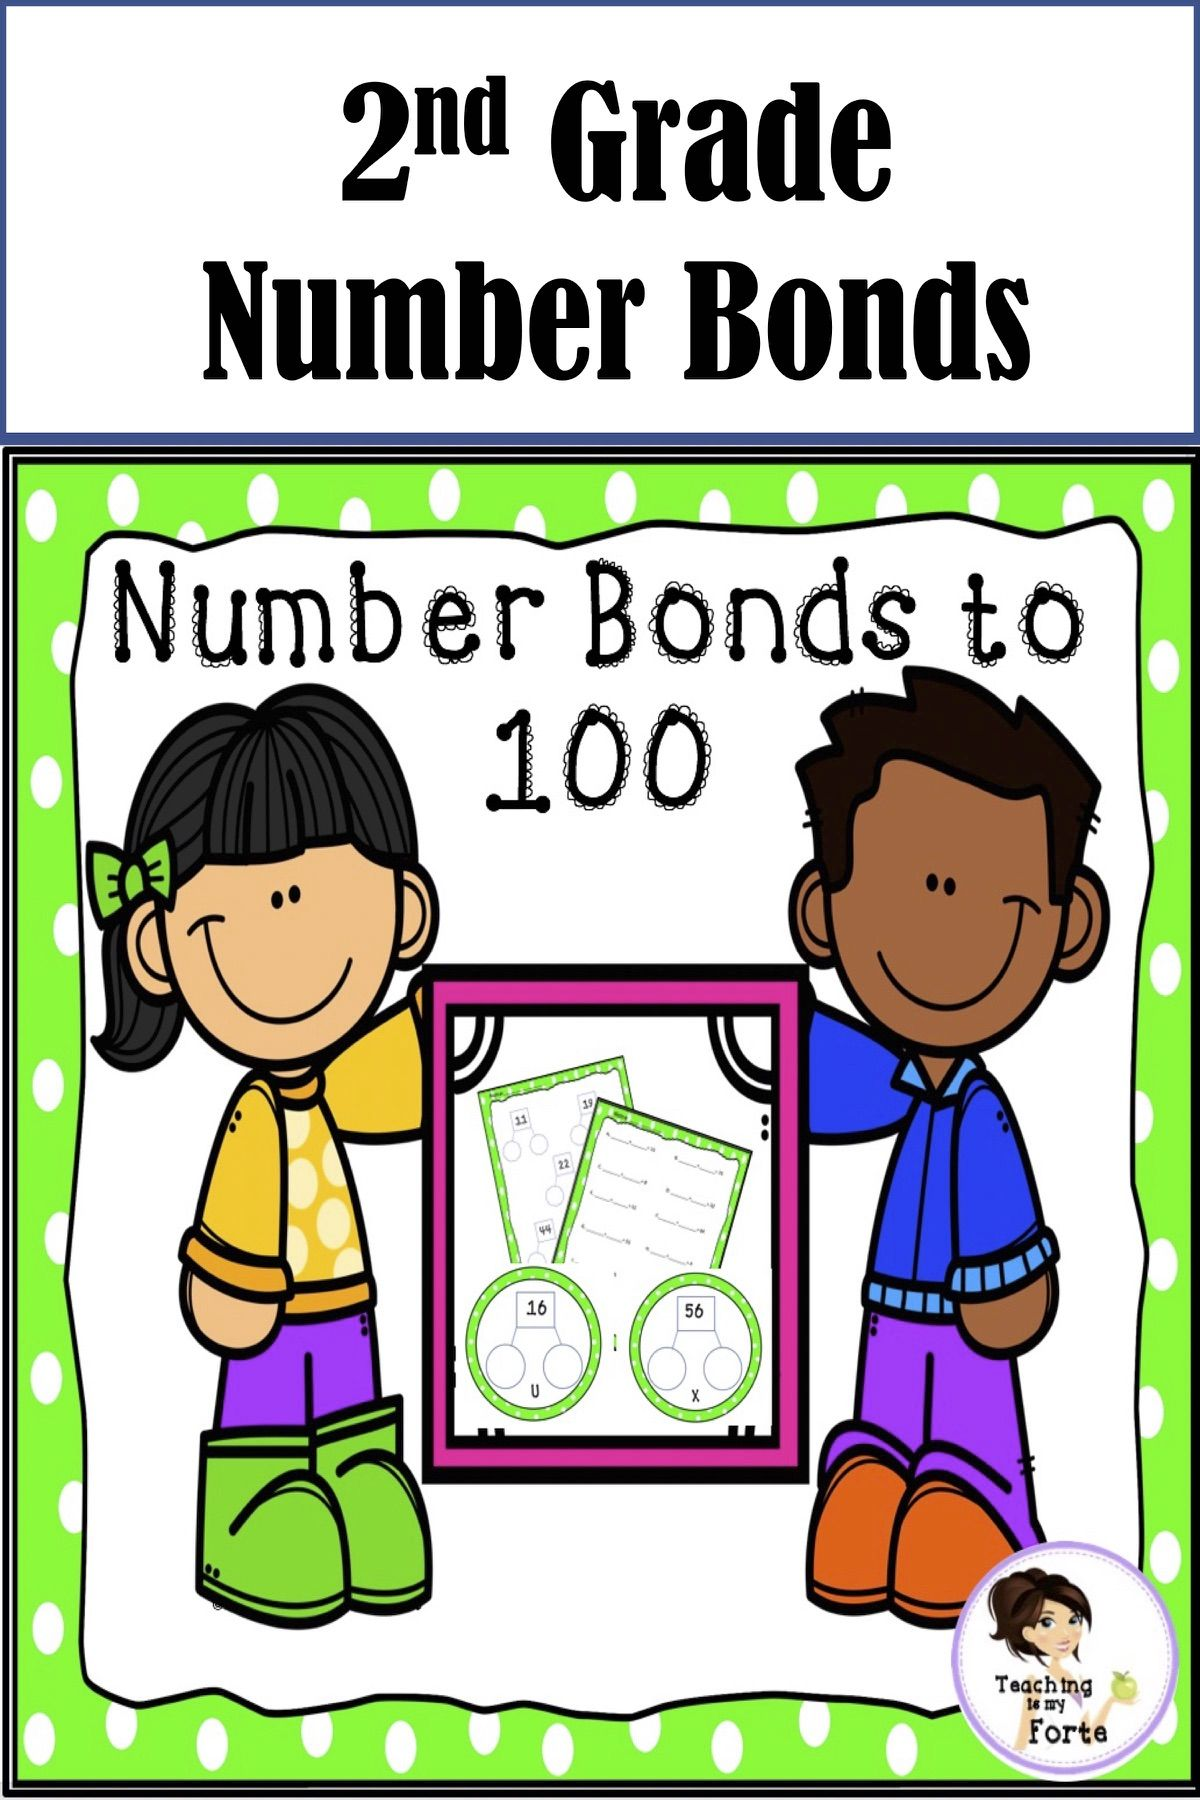 Number Bonds To 100